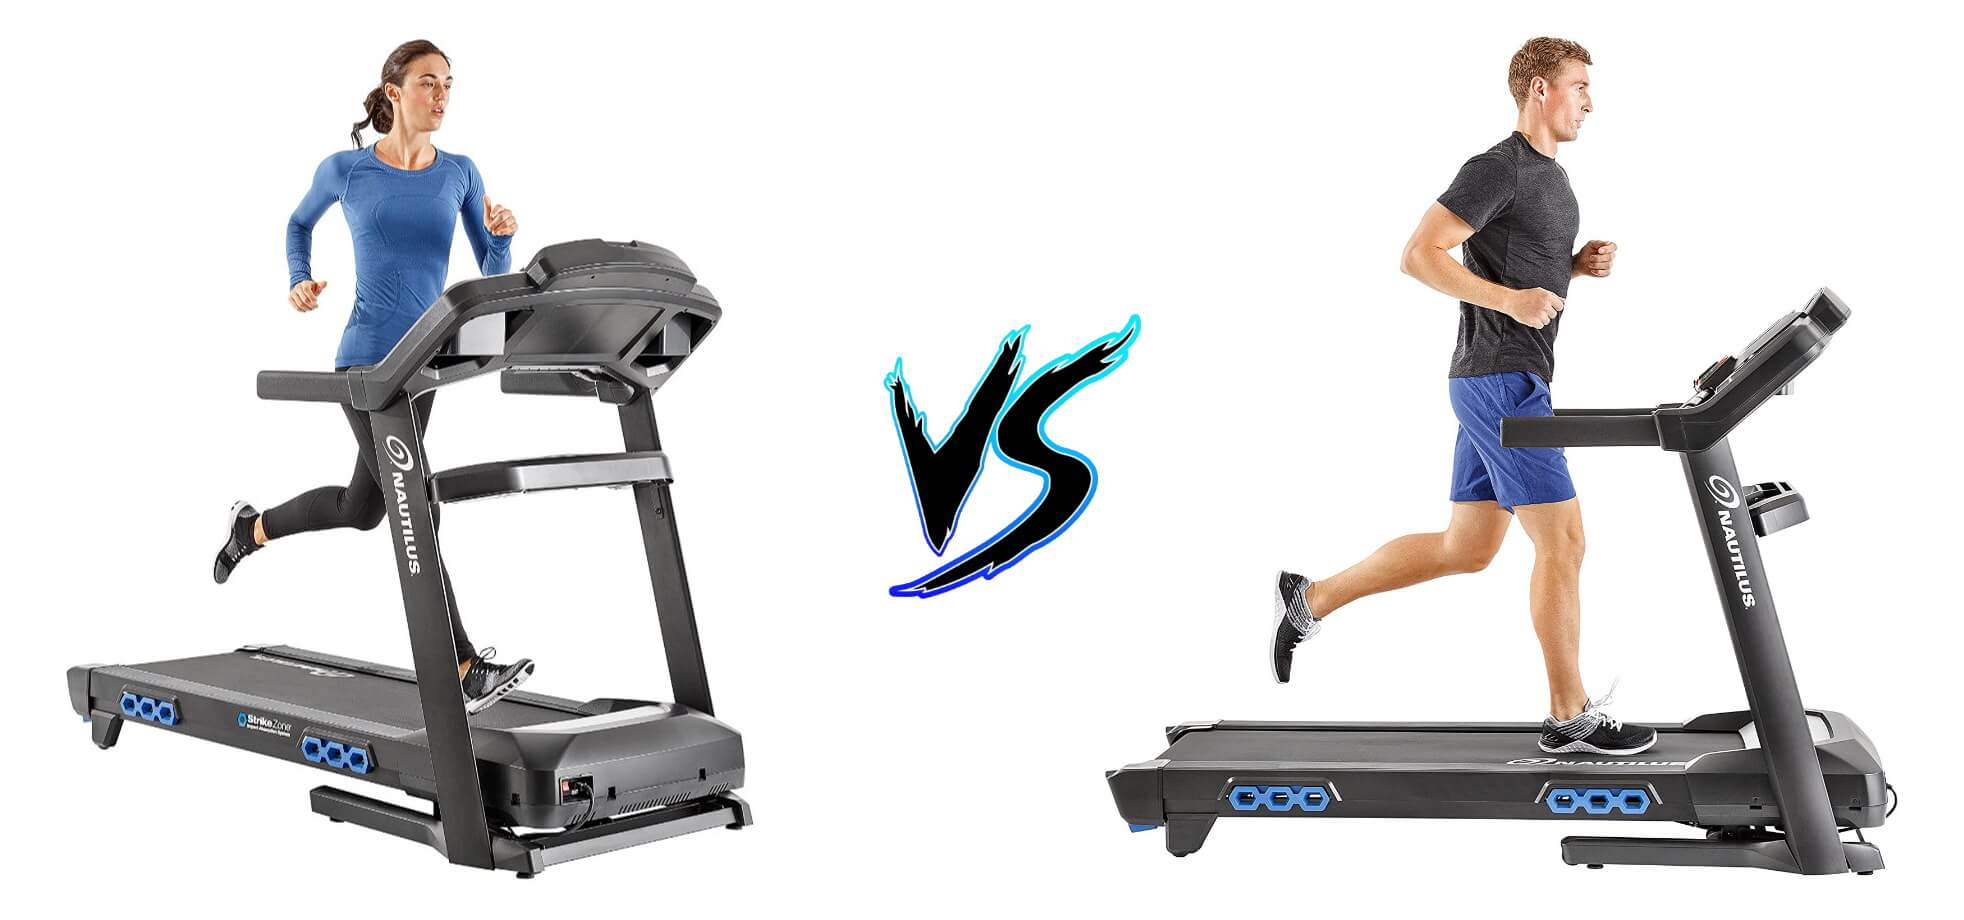 Nautilus T616 vs Nautilus T618 Treadmill Comparison